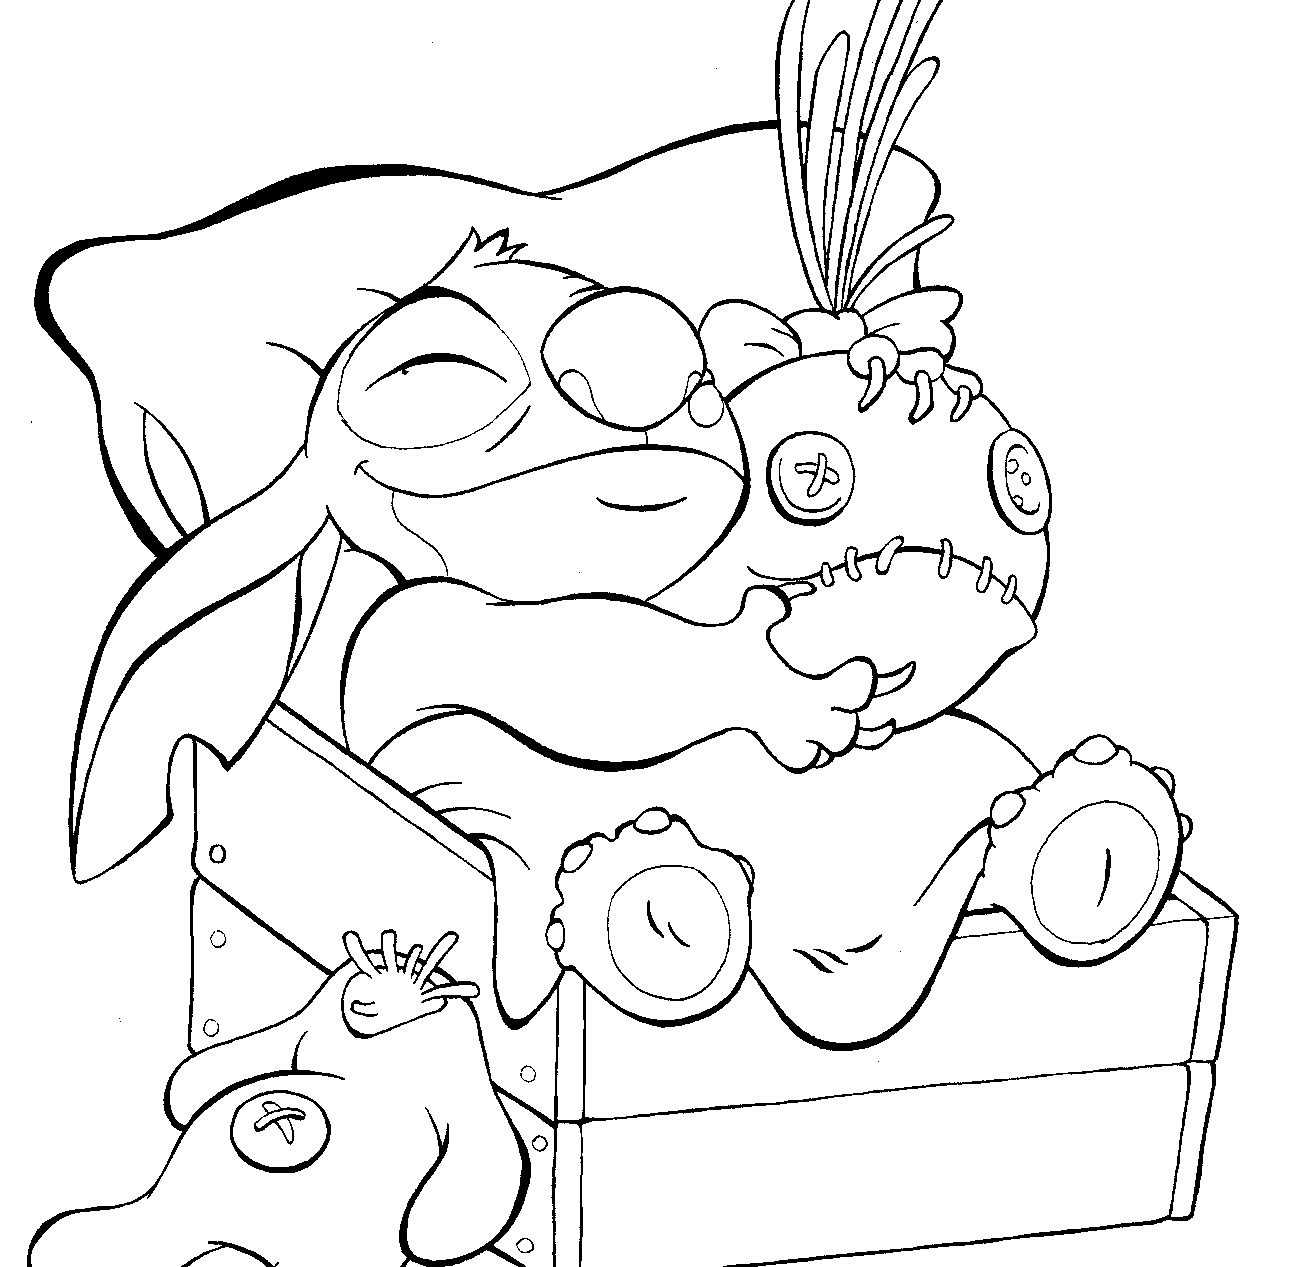 Free Printable Lilo And Stitch Coloring Pages For Kids Free Colouring Pages